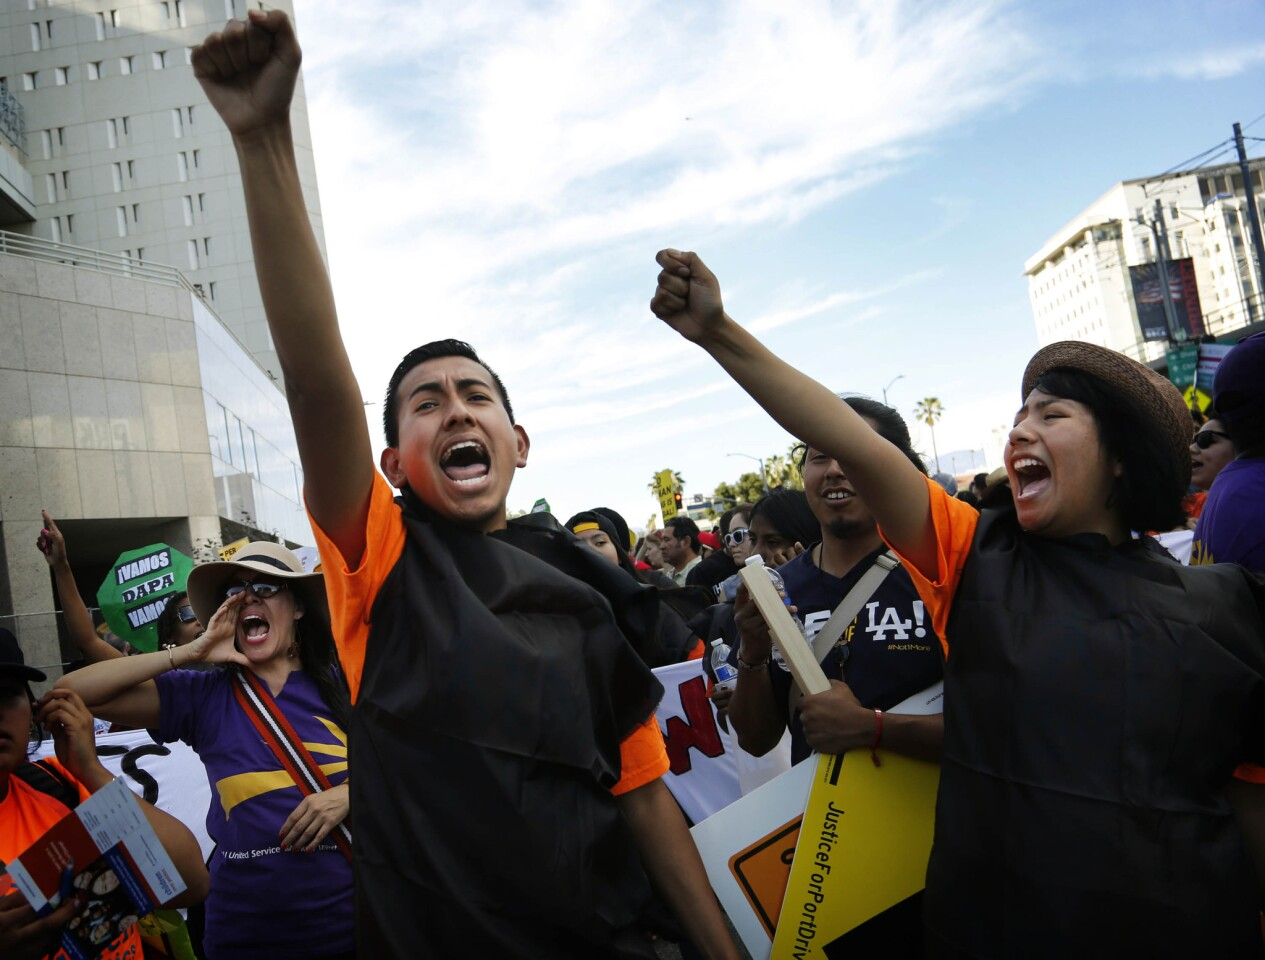 Jose Ramon Montes, left and Leticia Velez, of Children Over Politics, chant during a May Day March in downtown Los Angeles.